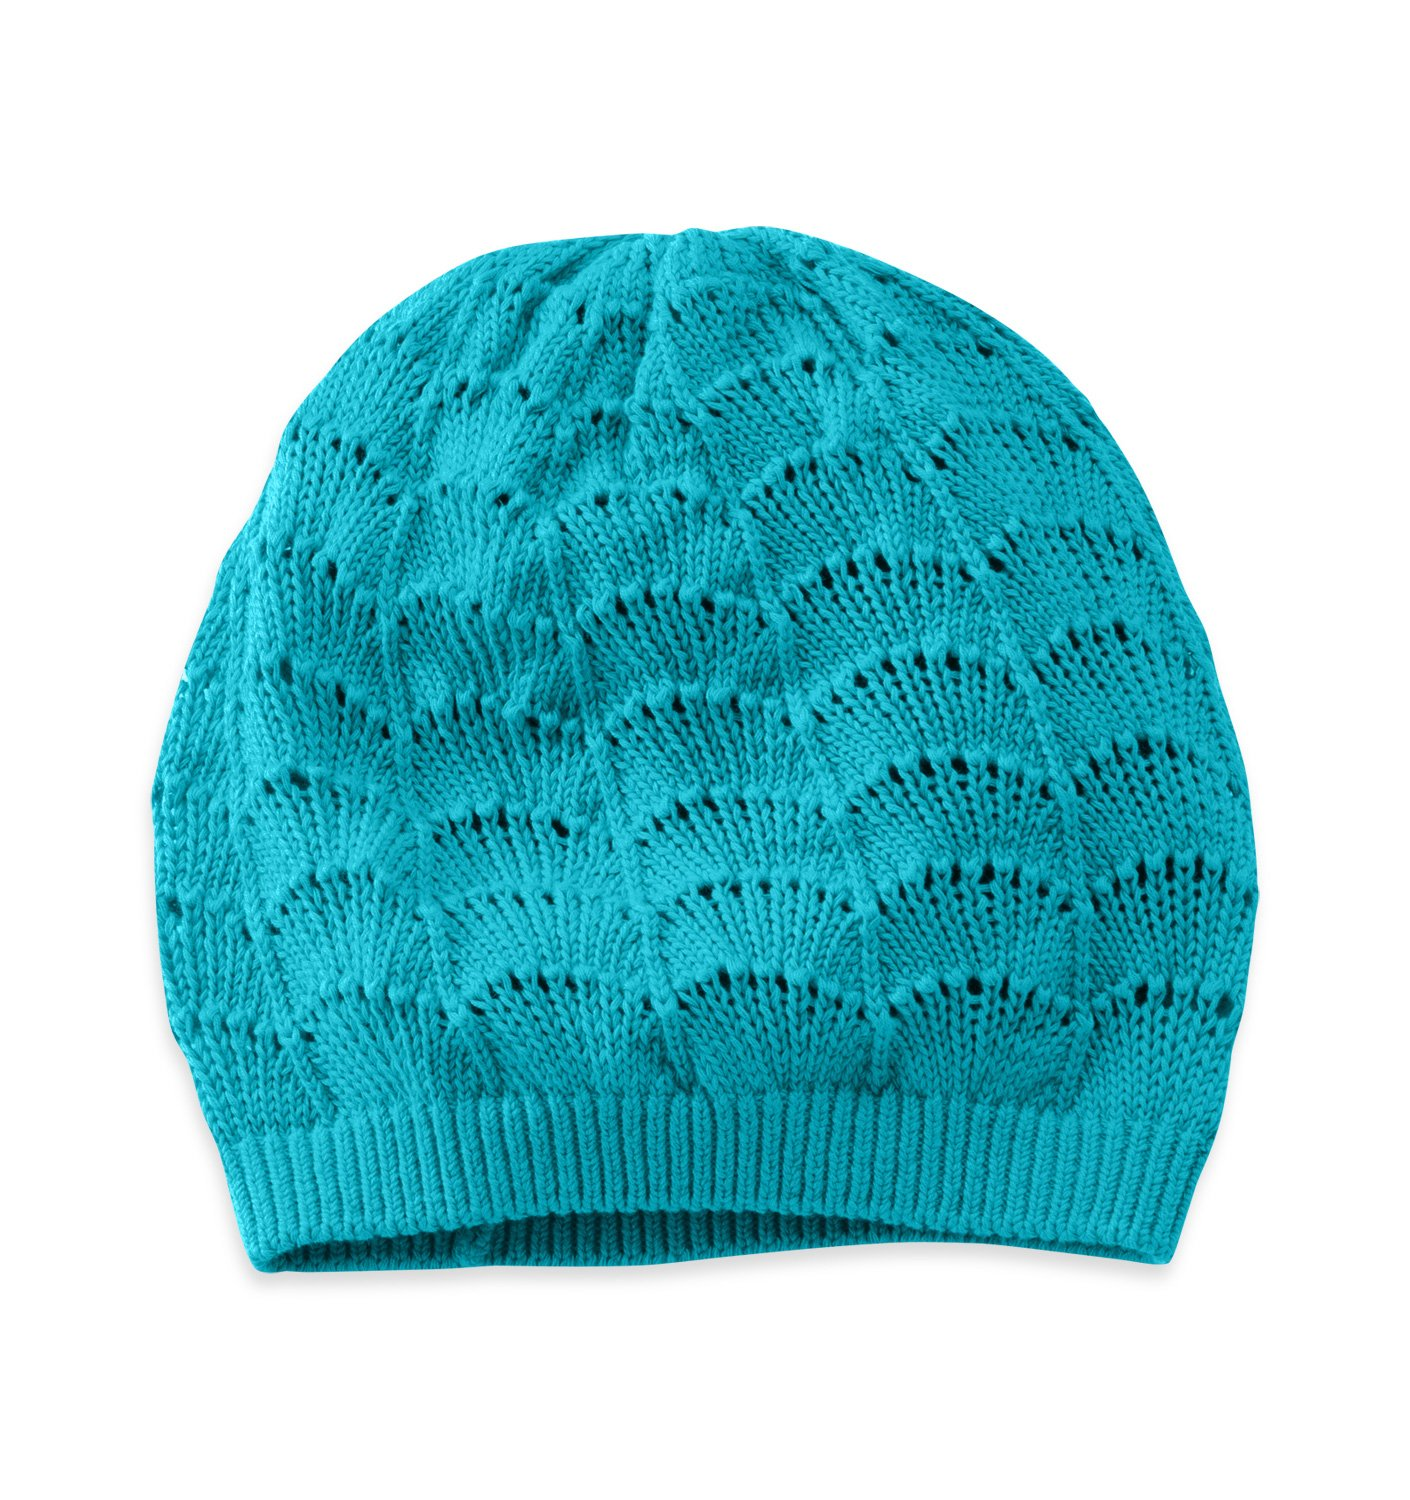 Outdoor Research Women's Chance Beanie, Typhoon, 1size